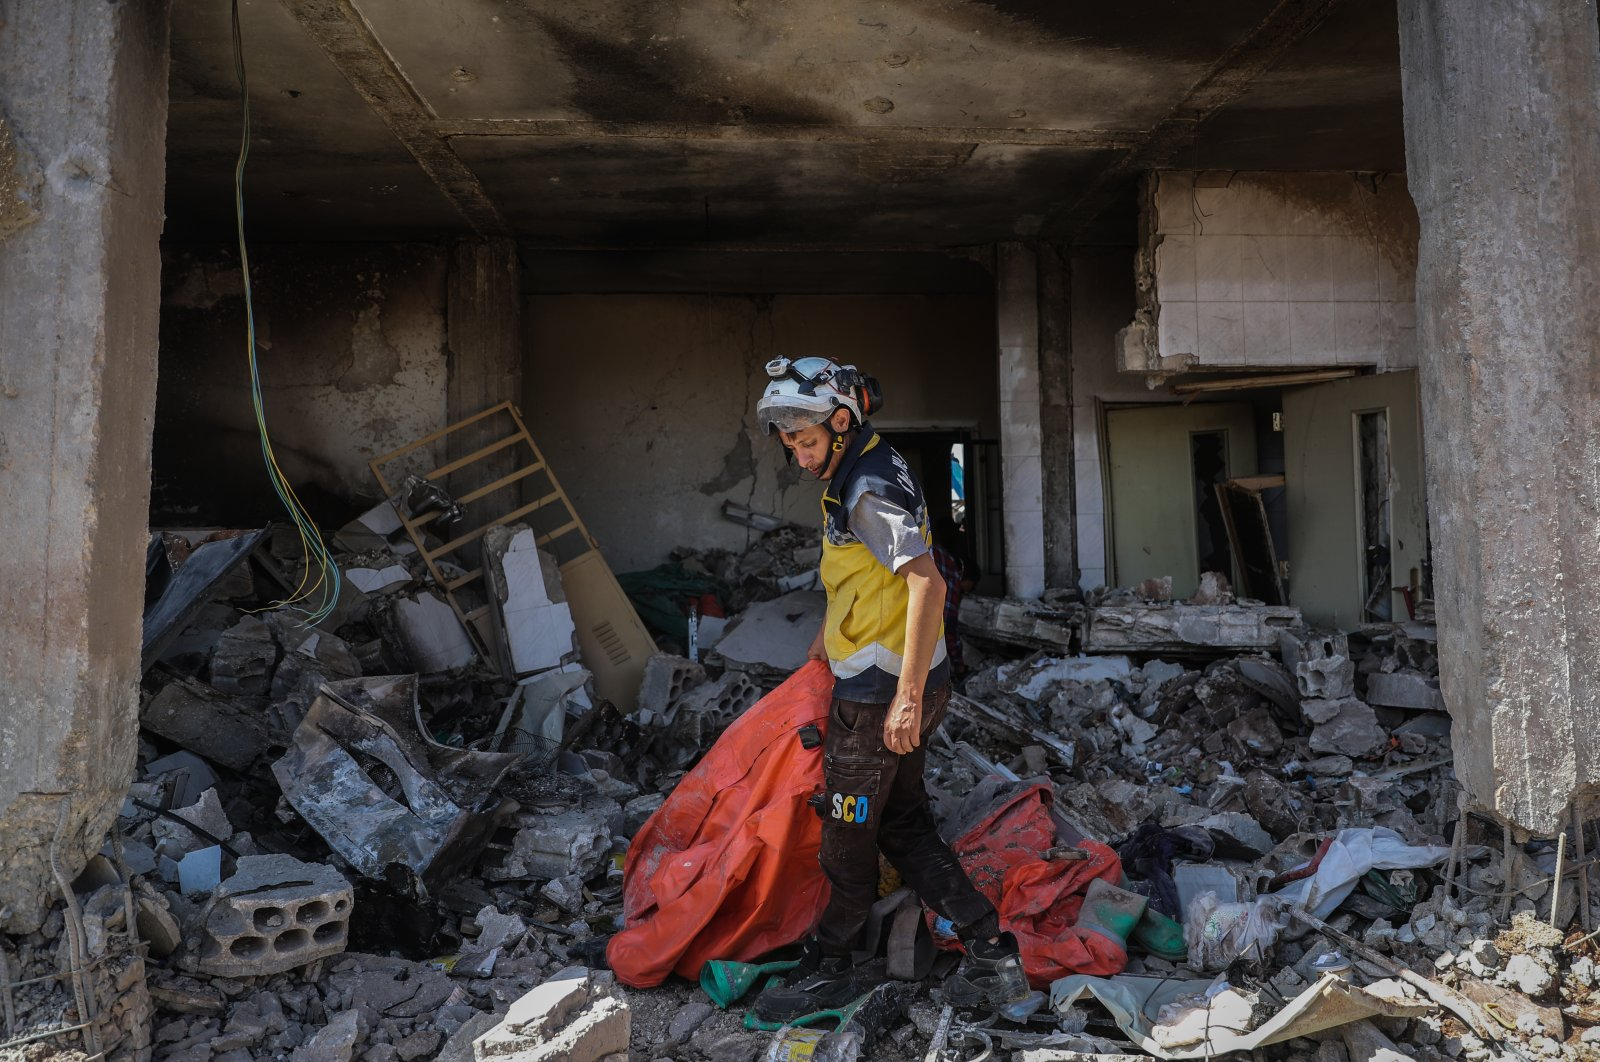 A member of the White Helmets inspects the damage at the group's center after it was targeted by warplanes in Idlib, Syria. (Getty Images)